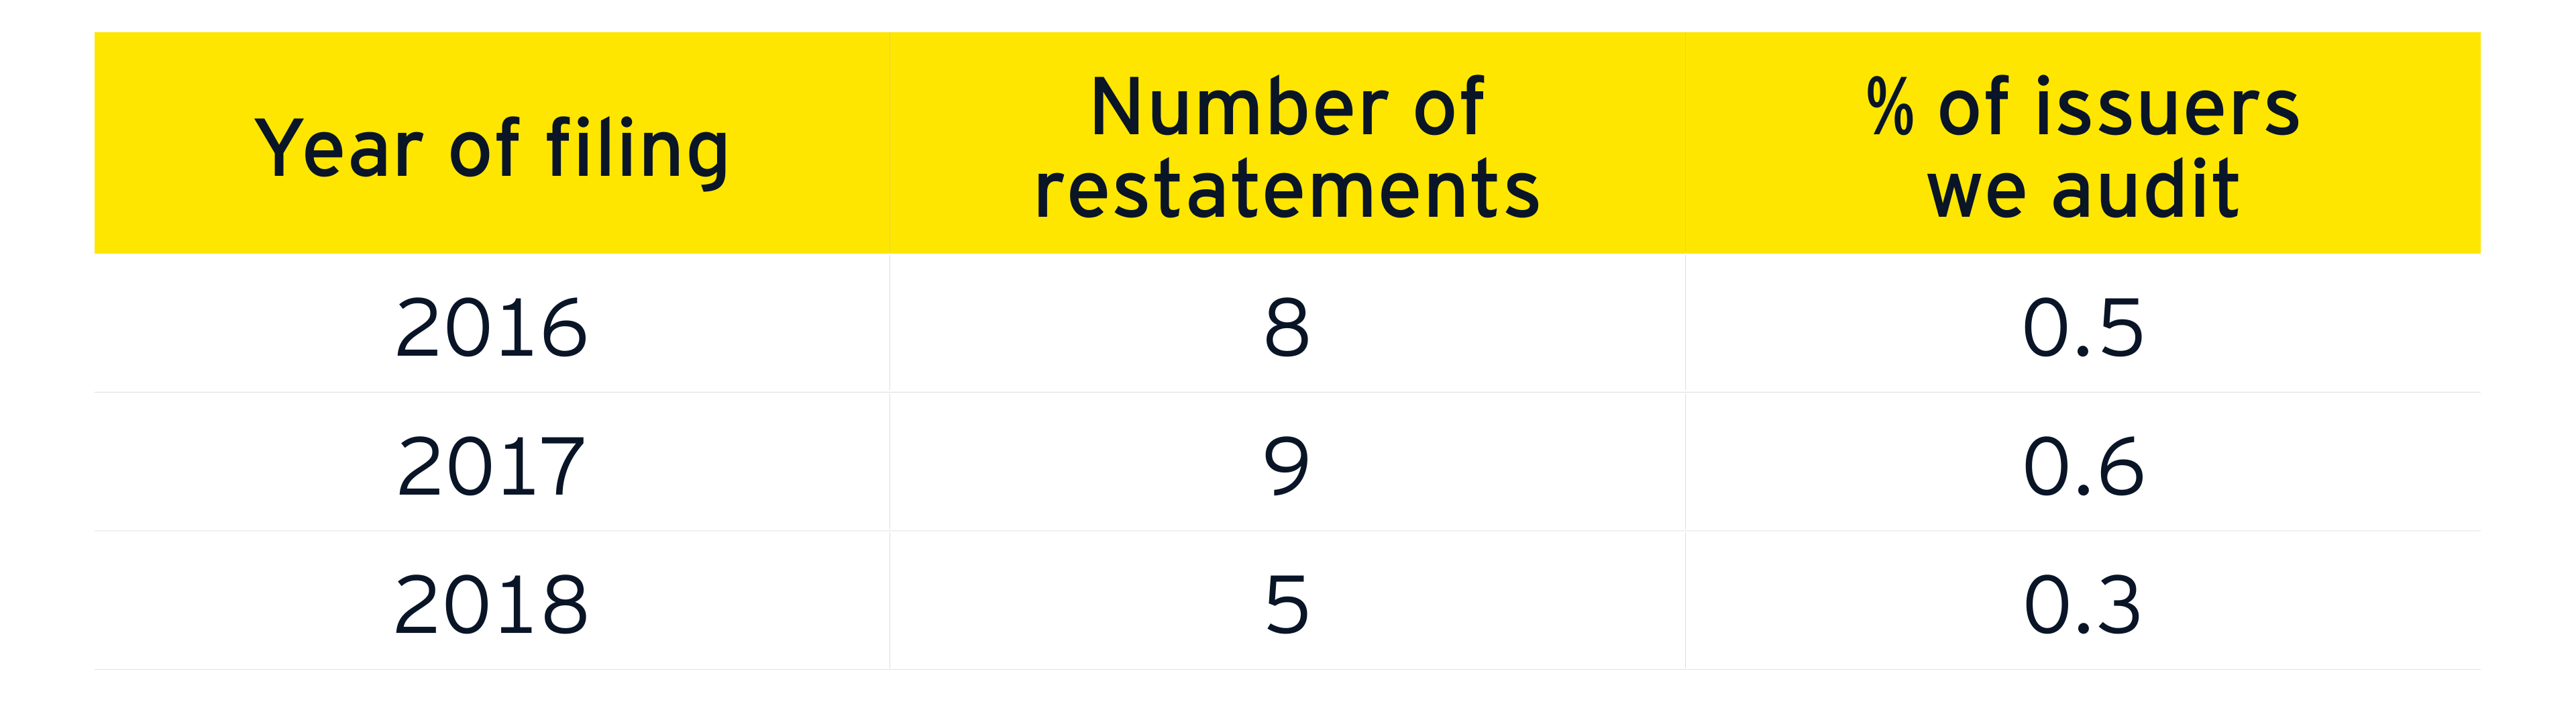 Restatements